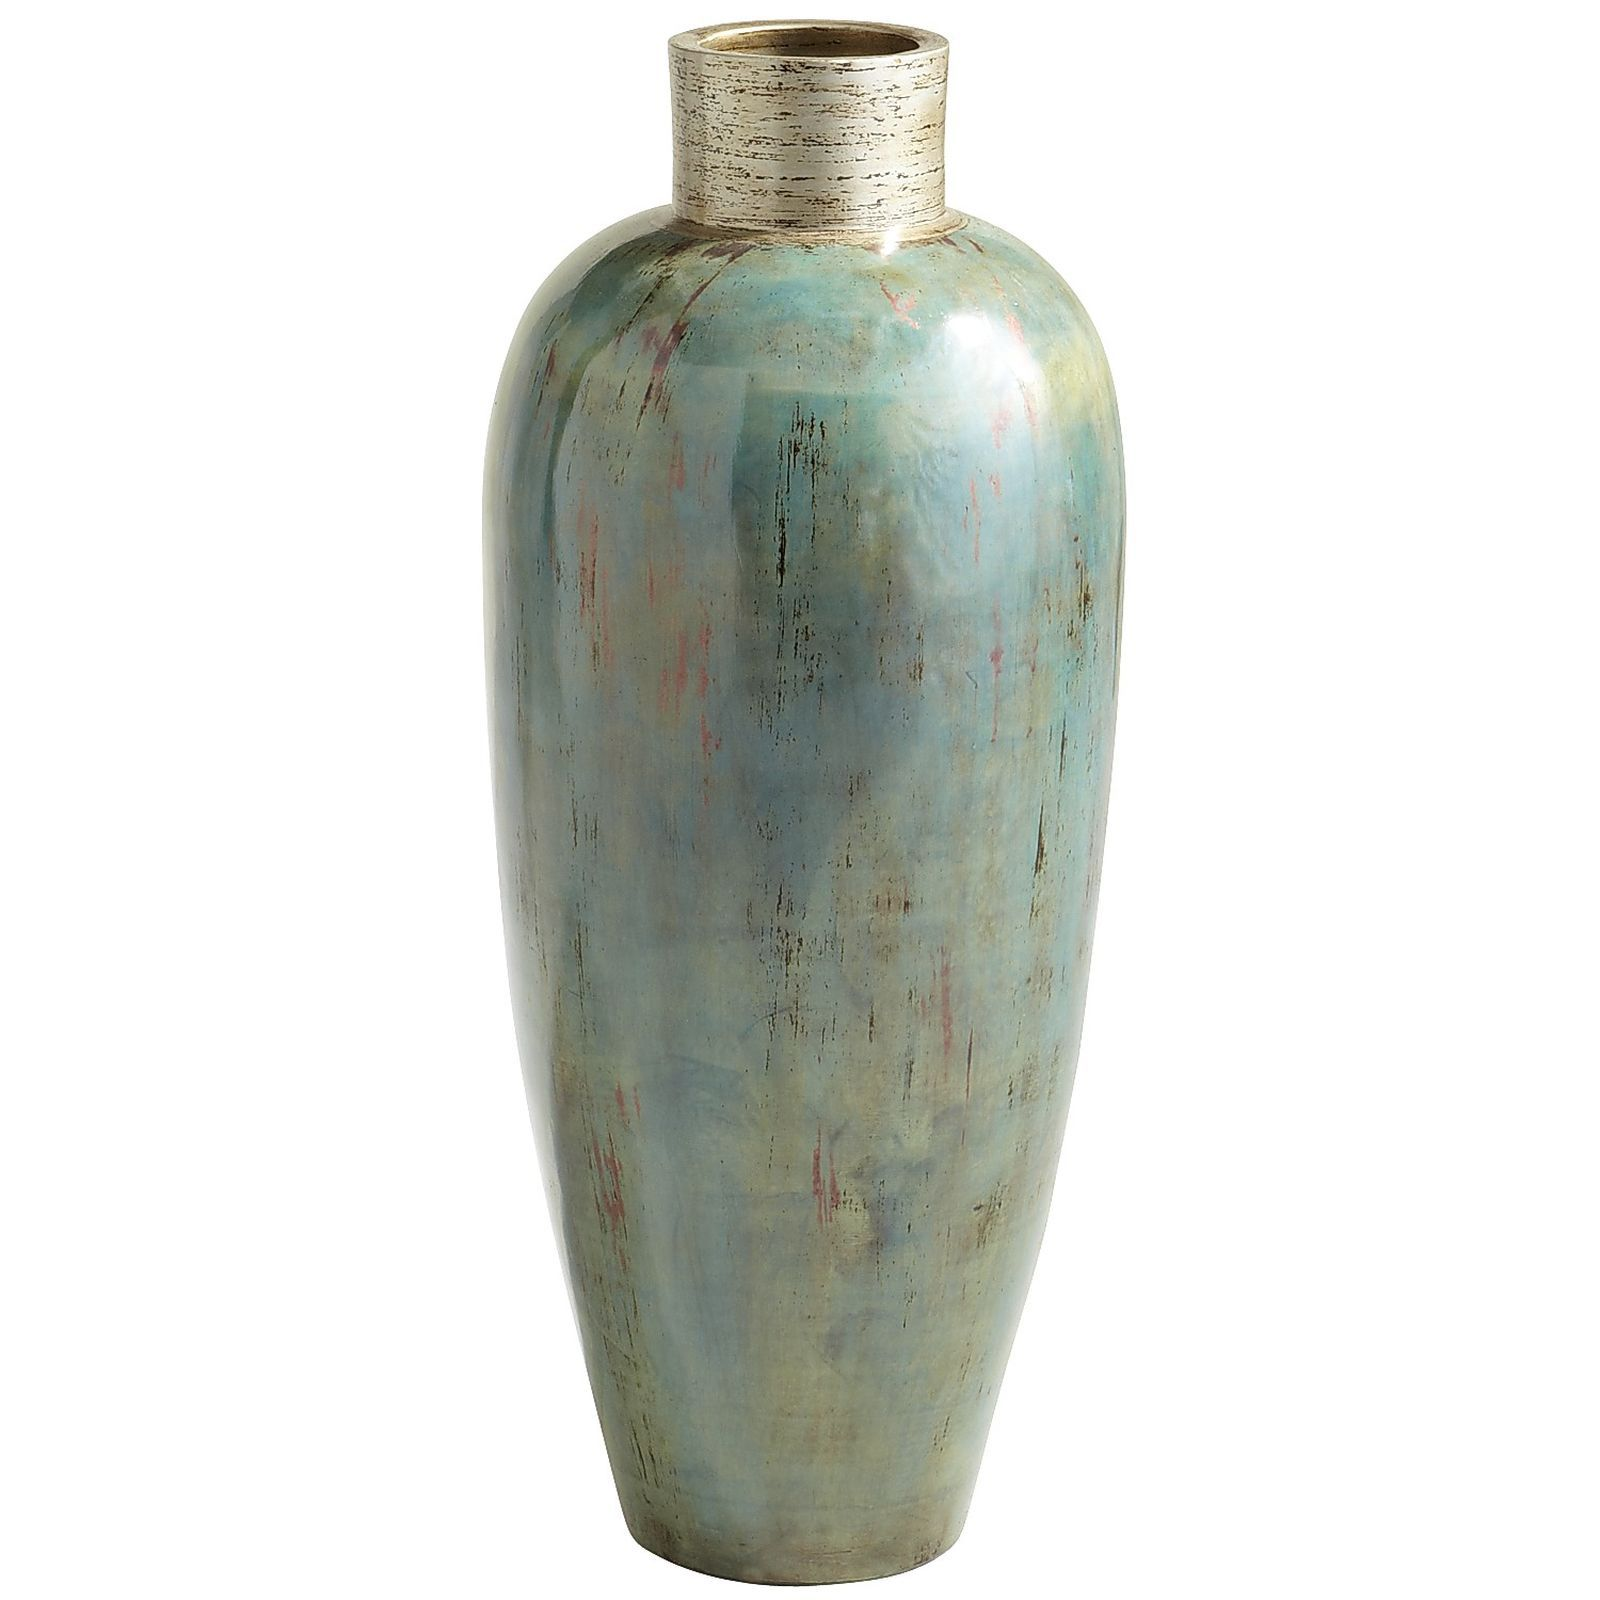 ocean blue patina terracotta floor vase terracotta floor there s something soothing and unique about this terracotta floor vase finished with an ocean blue